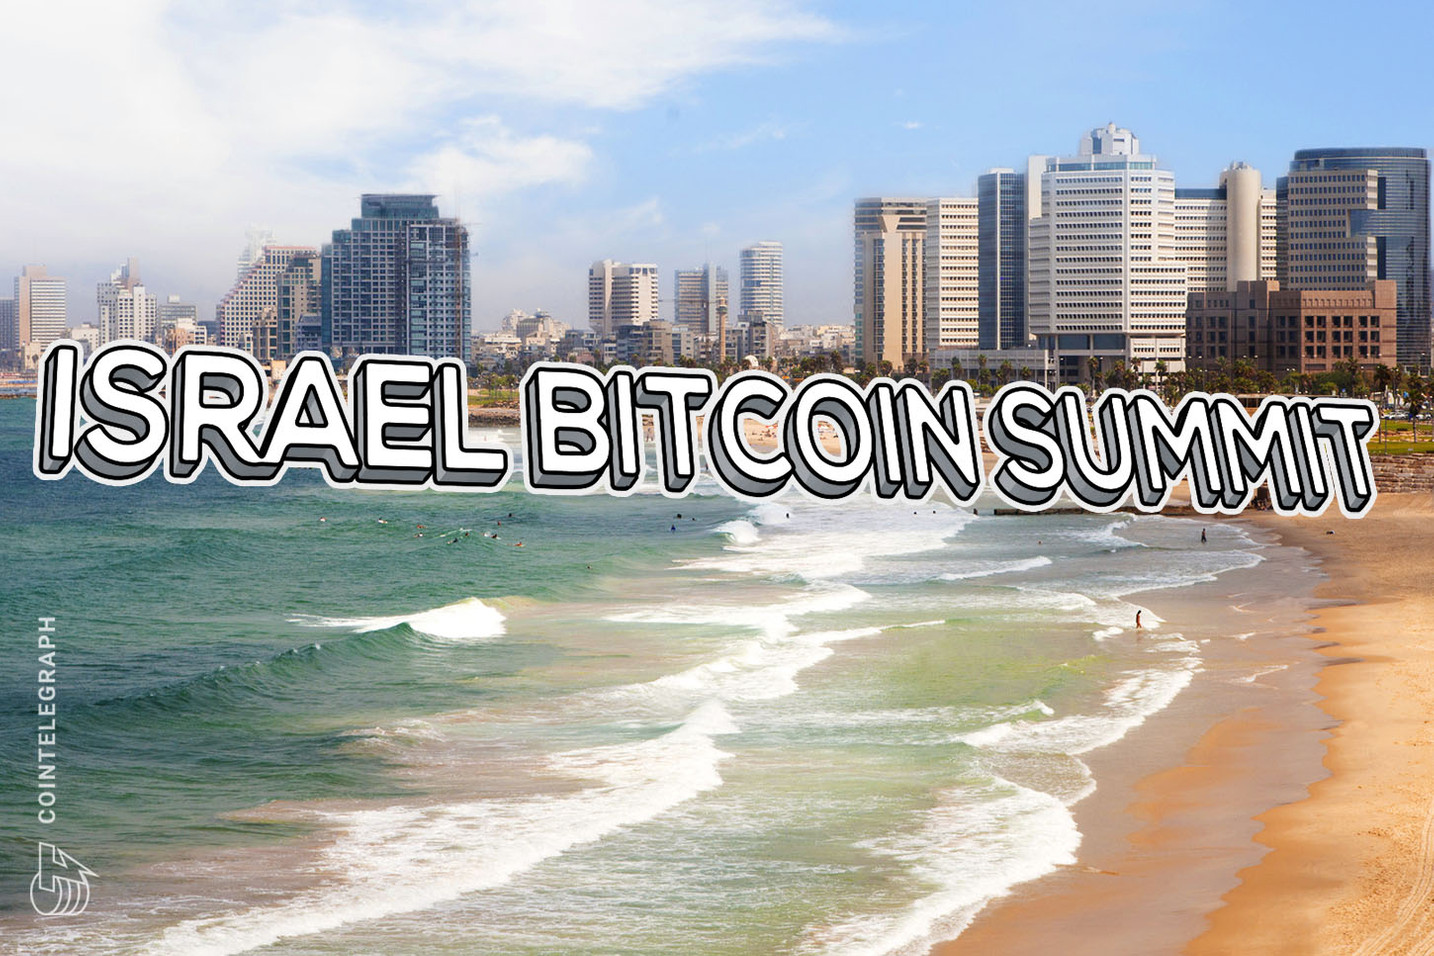 Bitcoin Summit: the Biggest Event for Bitcoin and Blockchain Enthusiasts in Israel